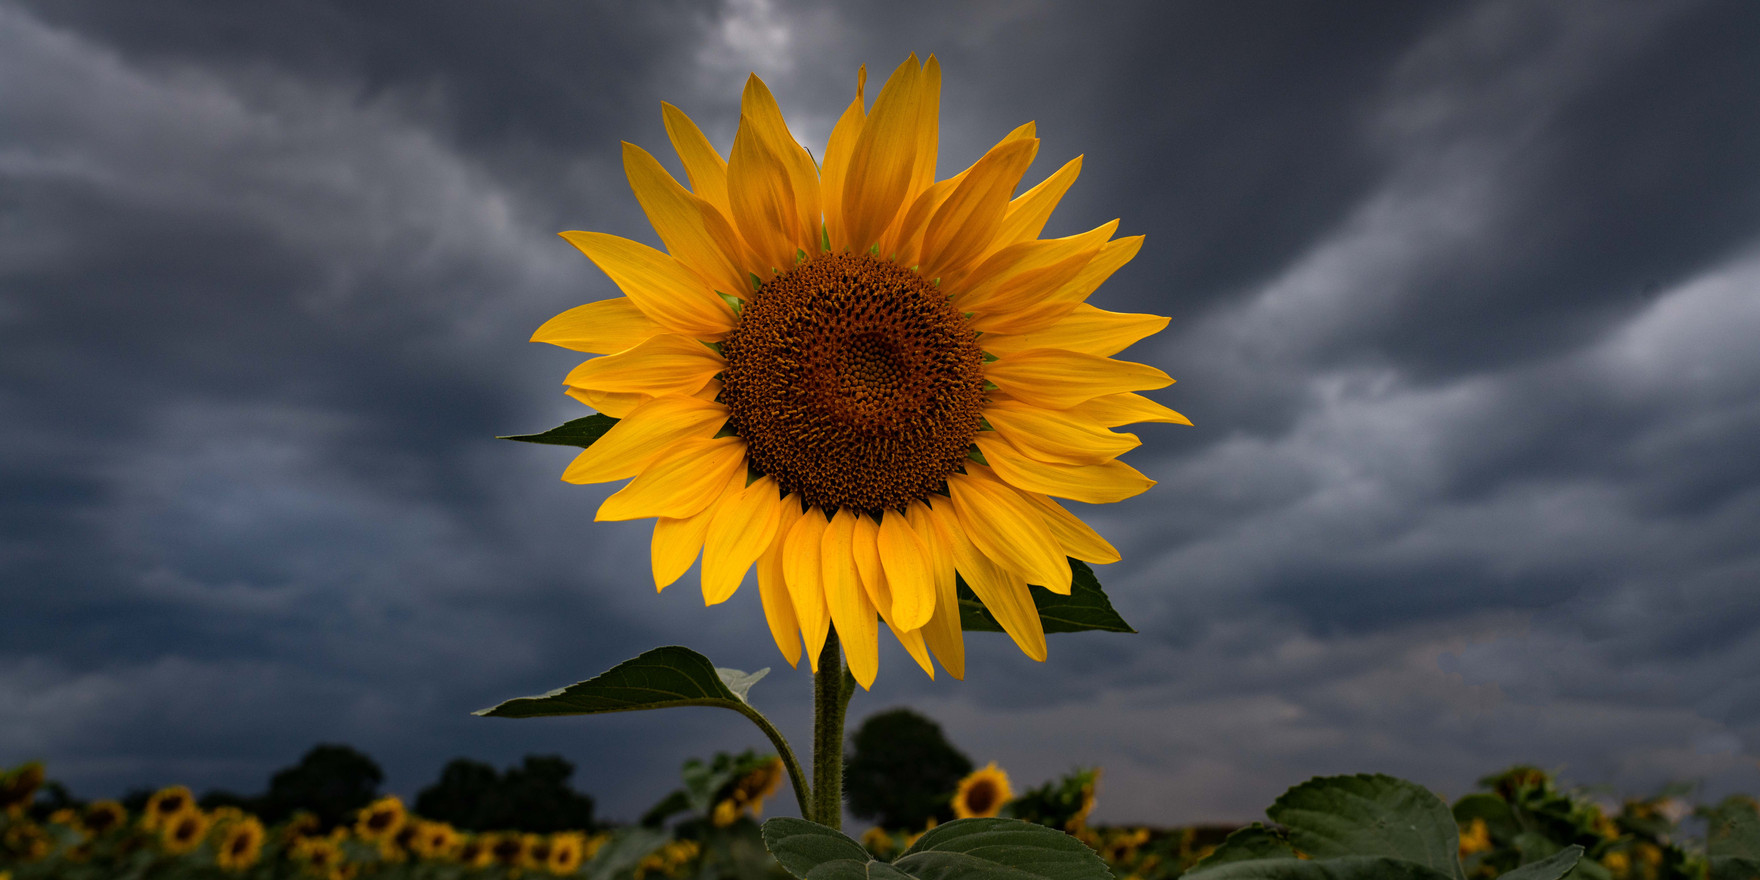 Sunflower - looming storm.jpg